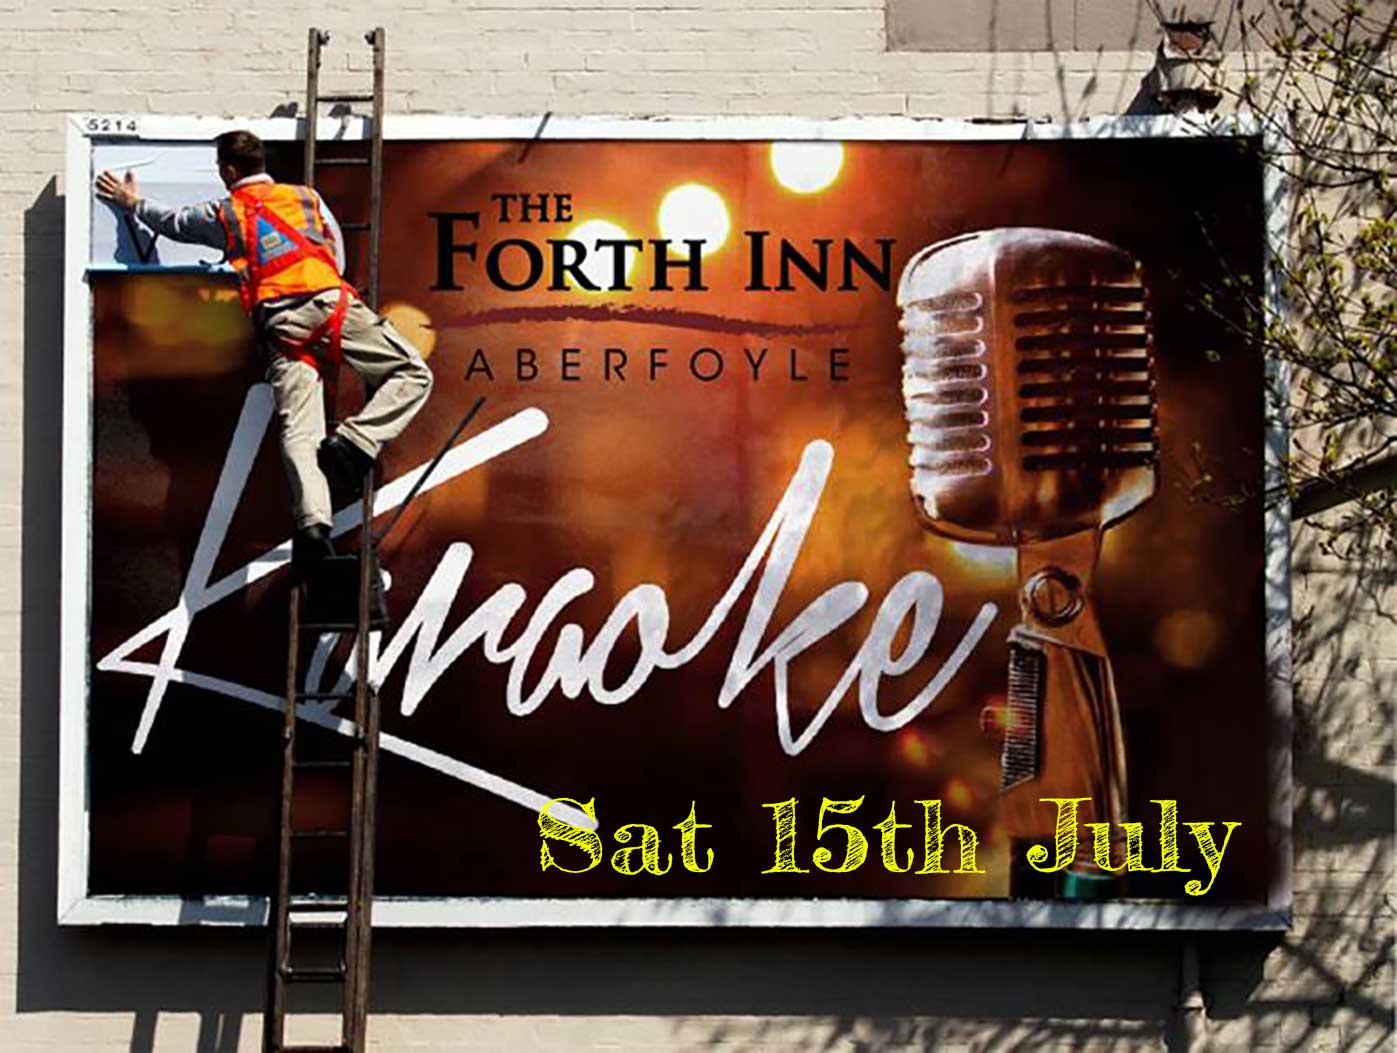 Karaoke at The Forth Inn